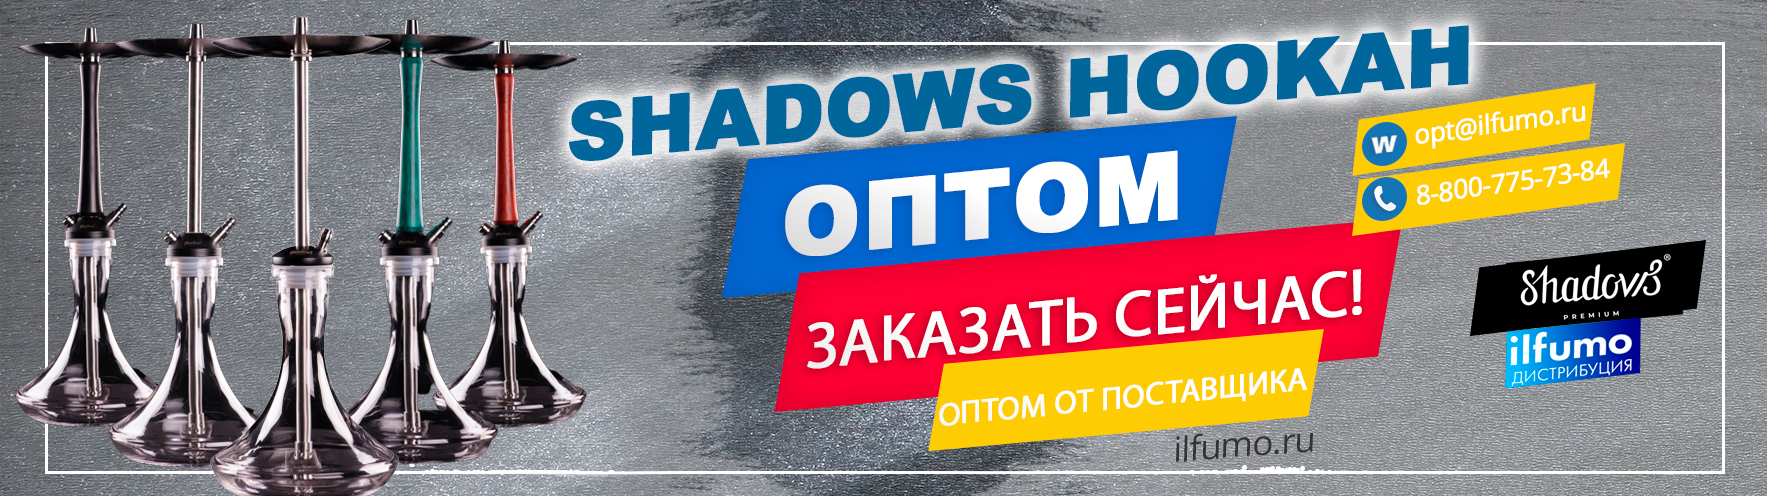 kupit kaljany shadows optom - Кальян Shadows